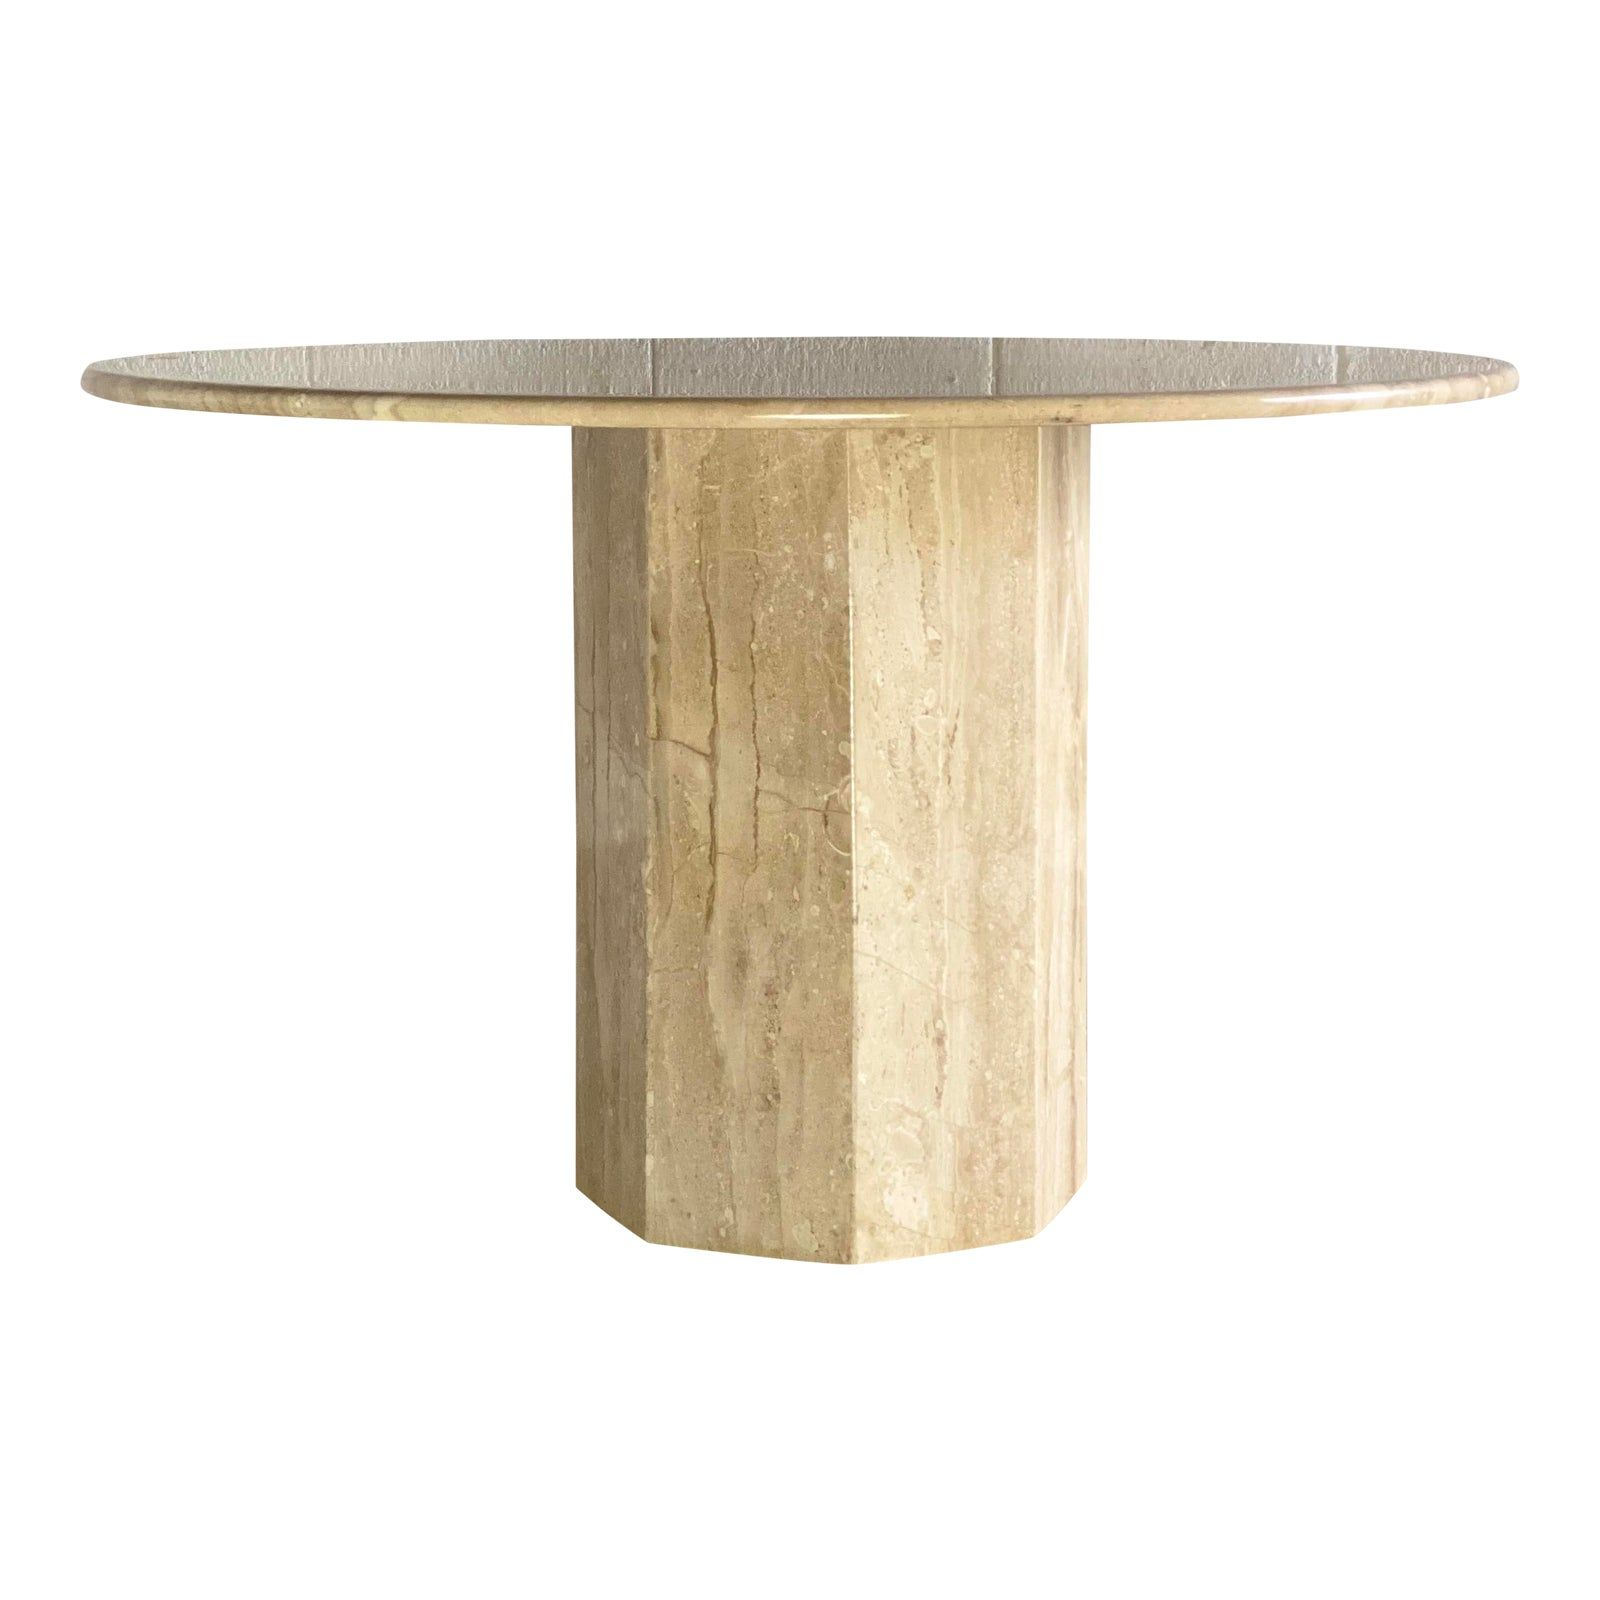 Https Chairish Prod Freetls Fastly Net Image Product Sized 5822313a 51ca 4f81 9384 013f8d30626c 1970s Italian Round Tra Dining Table Stone Dining Table Table [ 1600 x 1600 Pixel ]